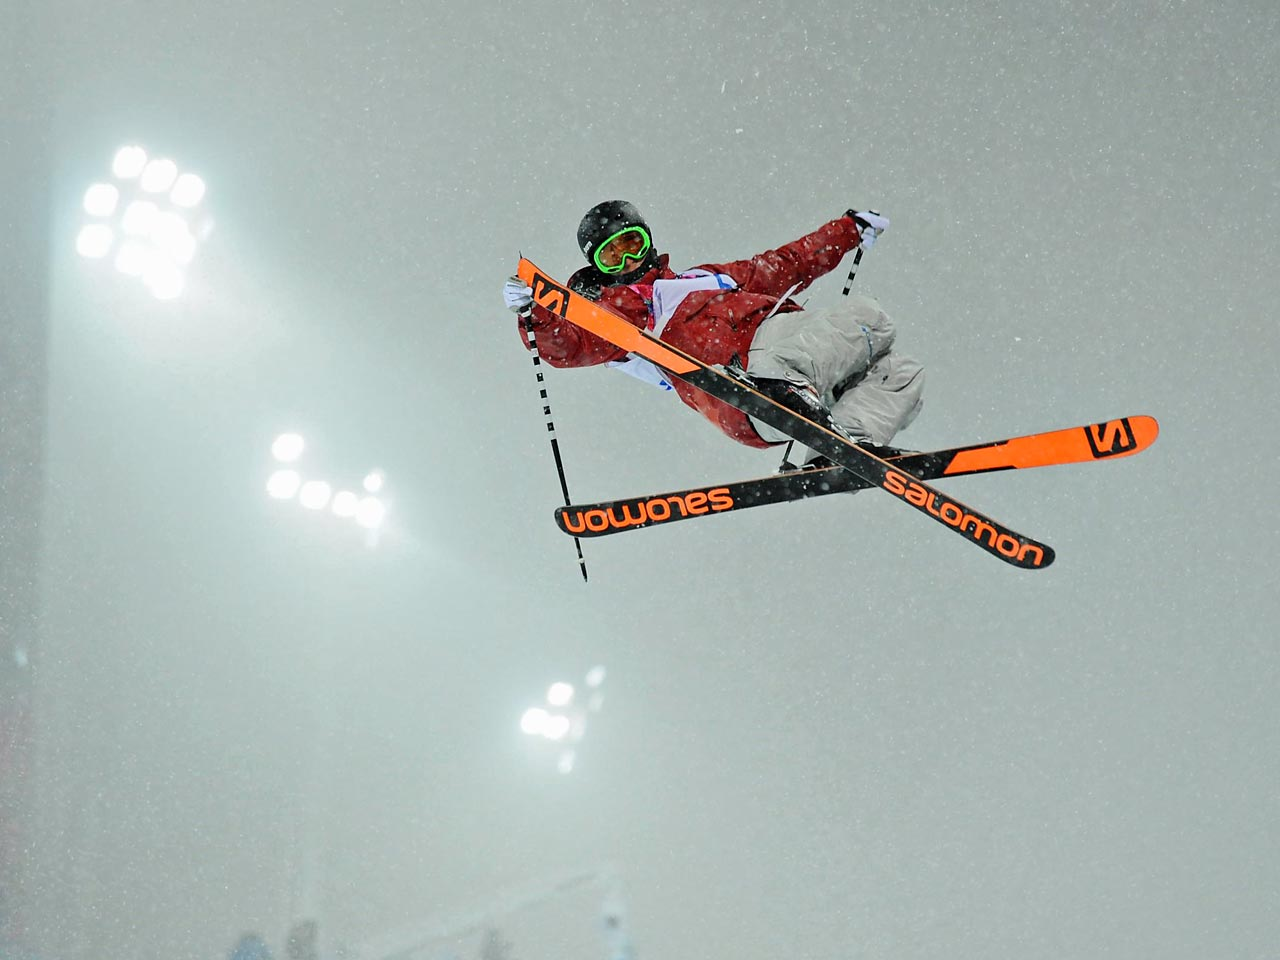 Canadian skier Mike Riddle flies through the air during the ski halfpipe qualification.